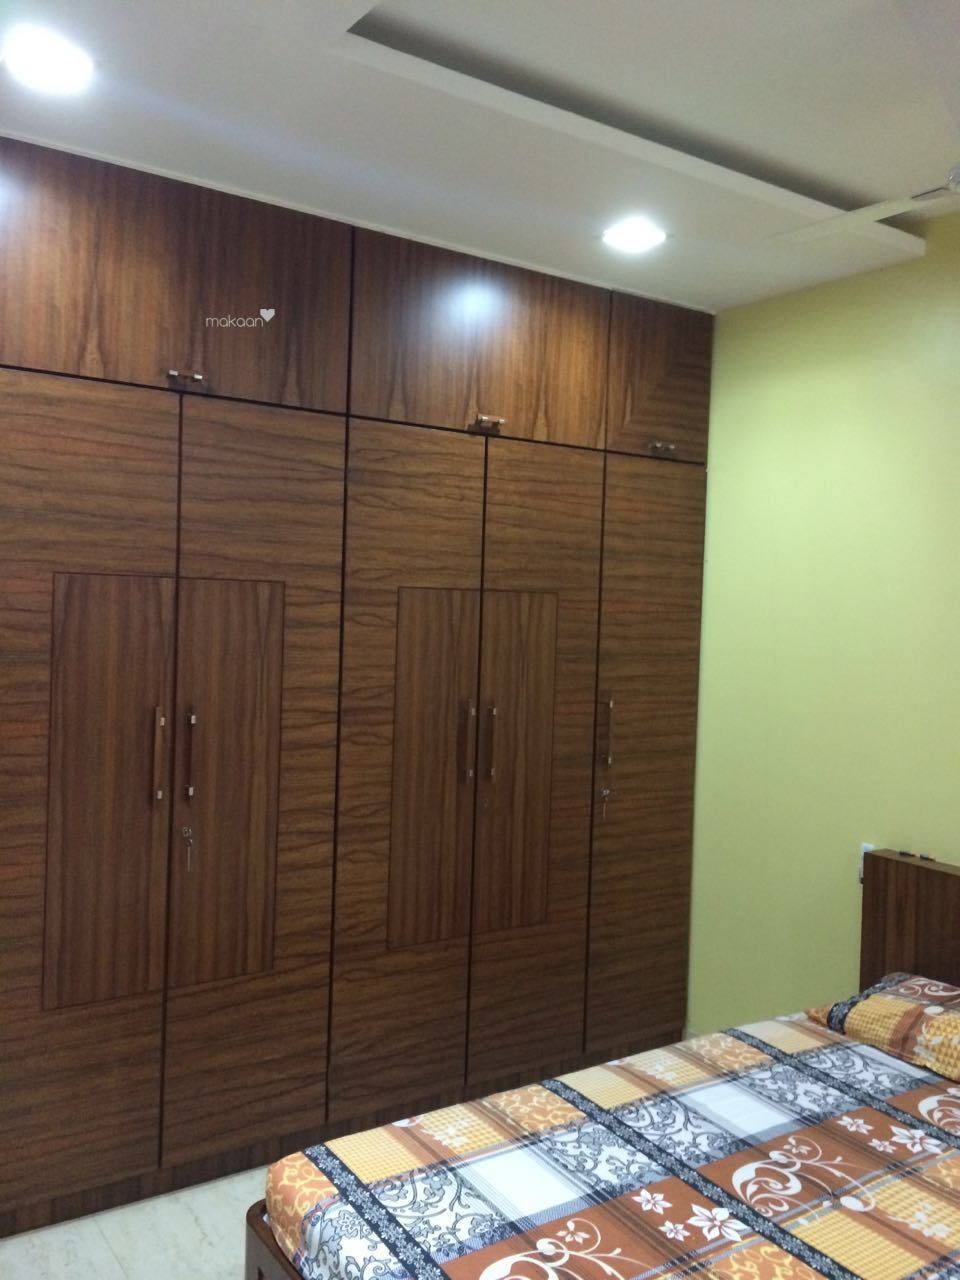 2000 sq ft 3BHK 3BHK+3T (2,000 sq ft) + Study Room Property By Global Real Estate Consultants In Project, Bandra West